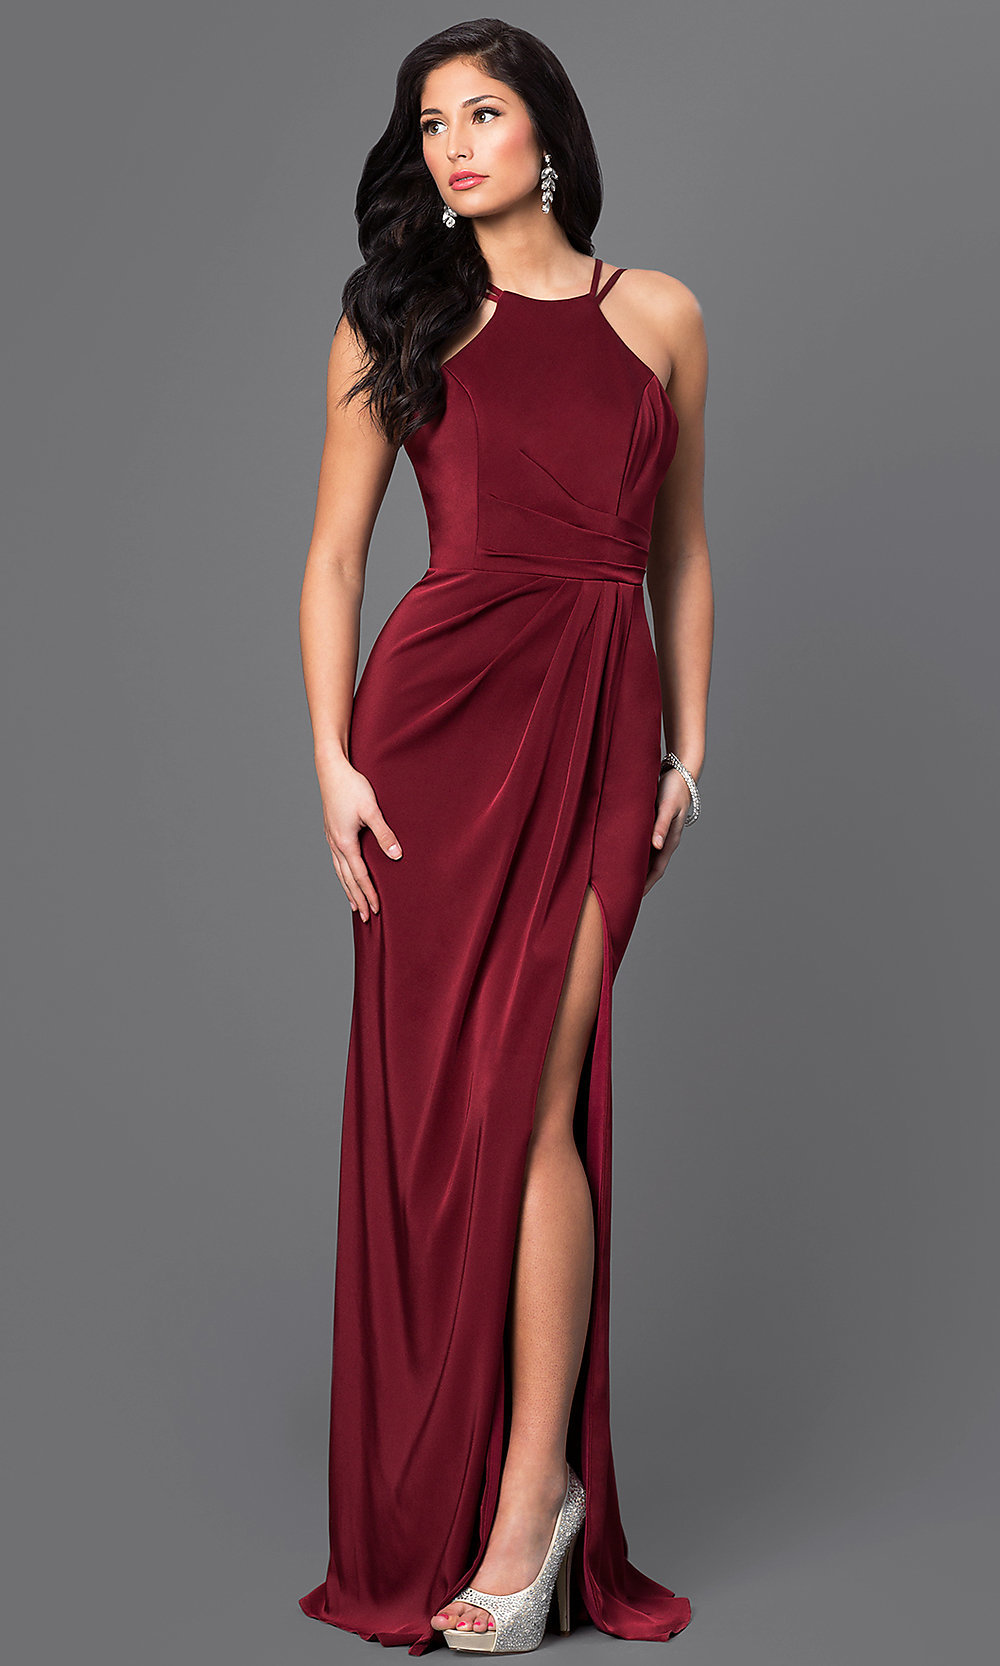 Faviana High-Neck Long Formal Dress - PromGirl